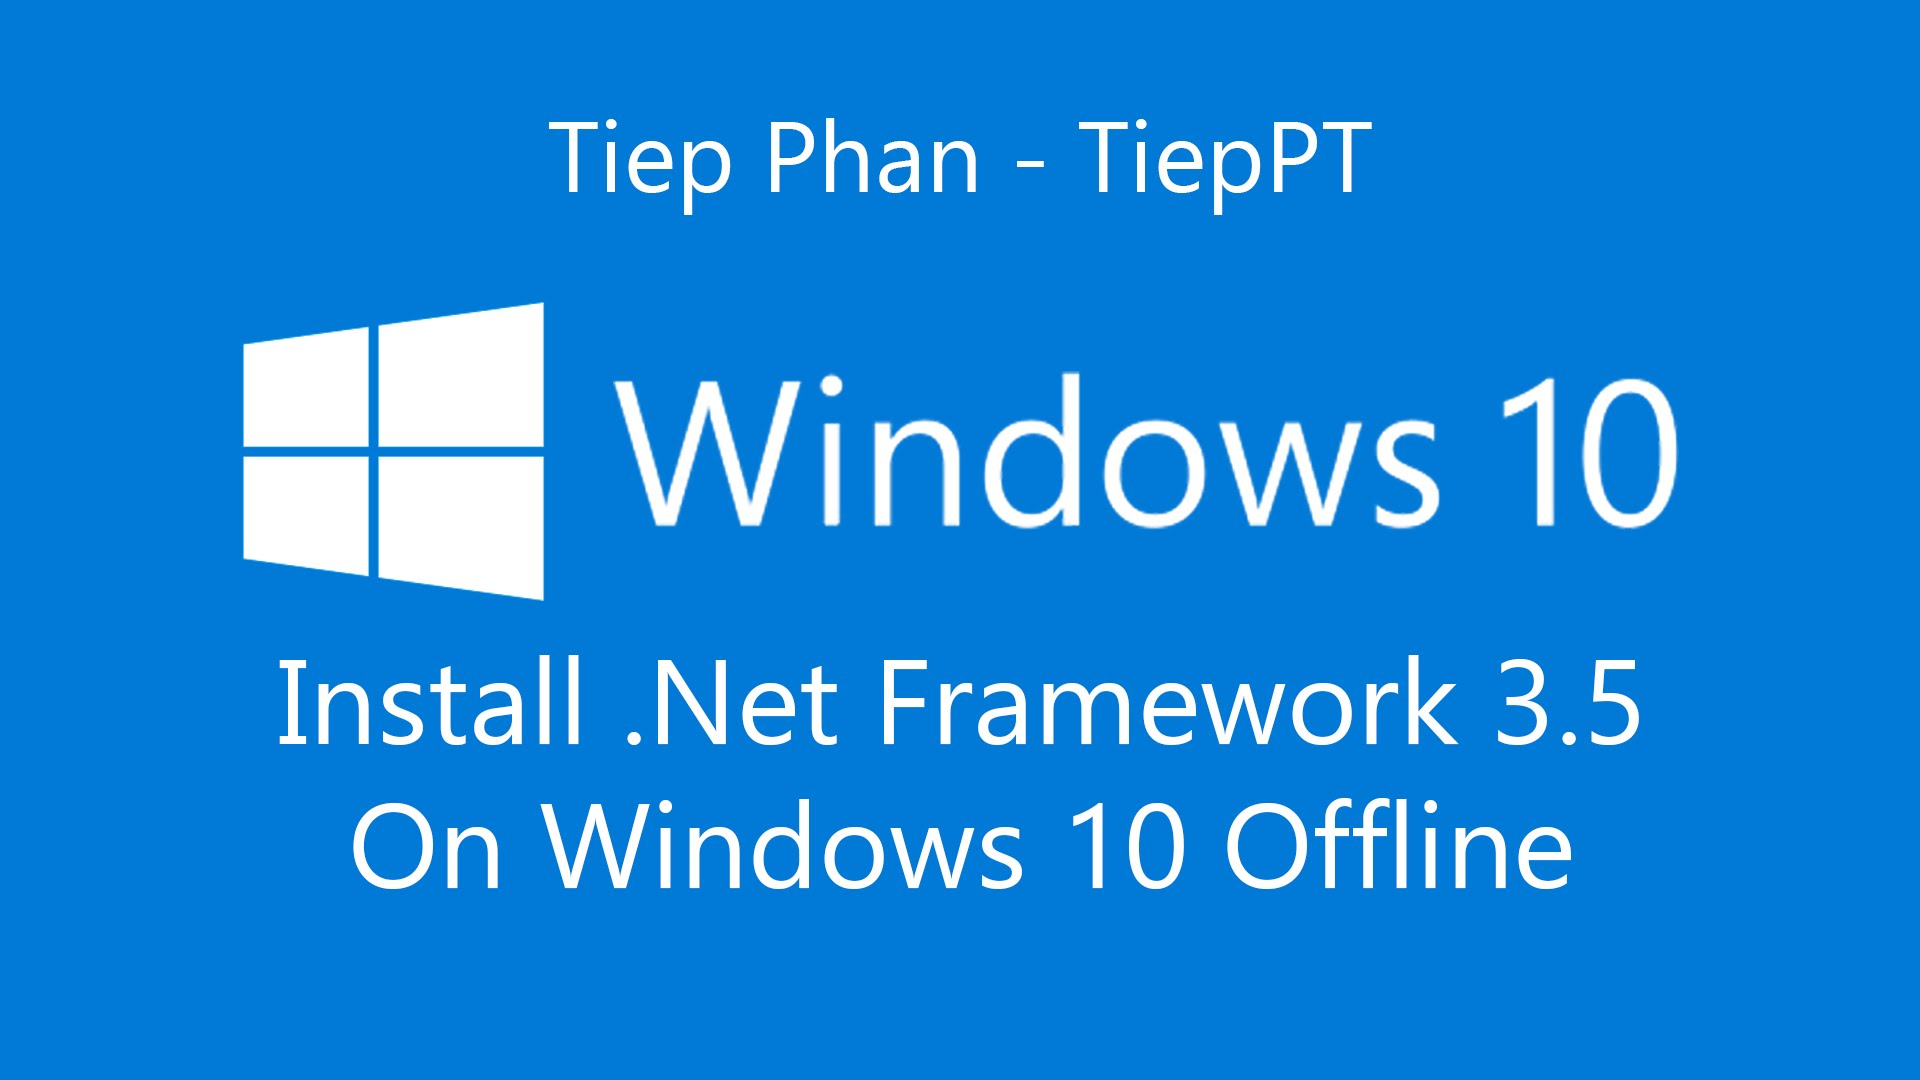 net framework in windows 10